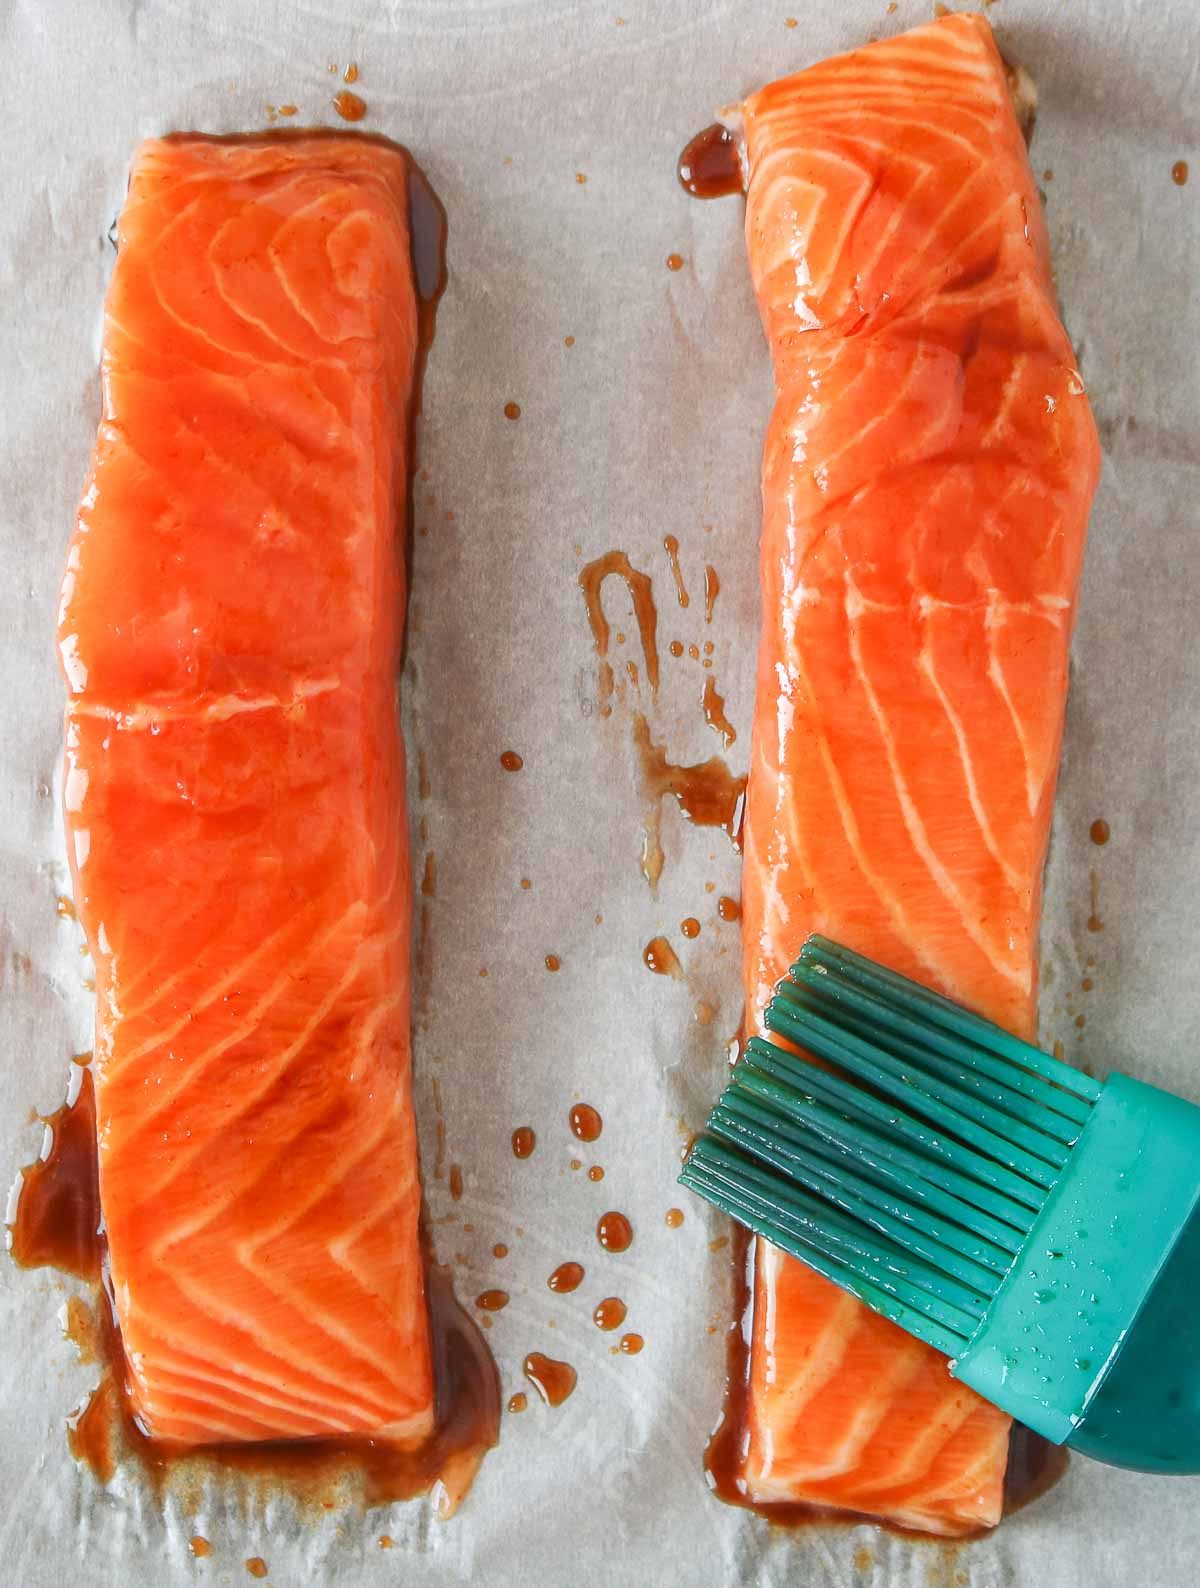 Two uncooked salmon fillets brushed with a soy sauce mixture before baking.